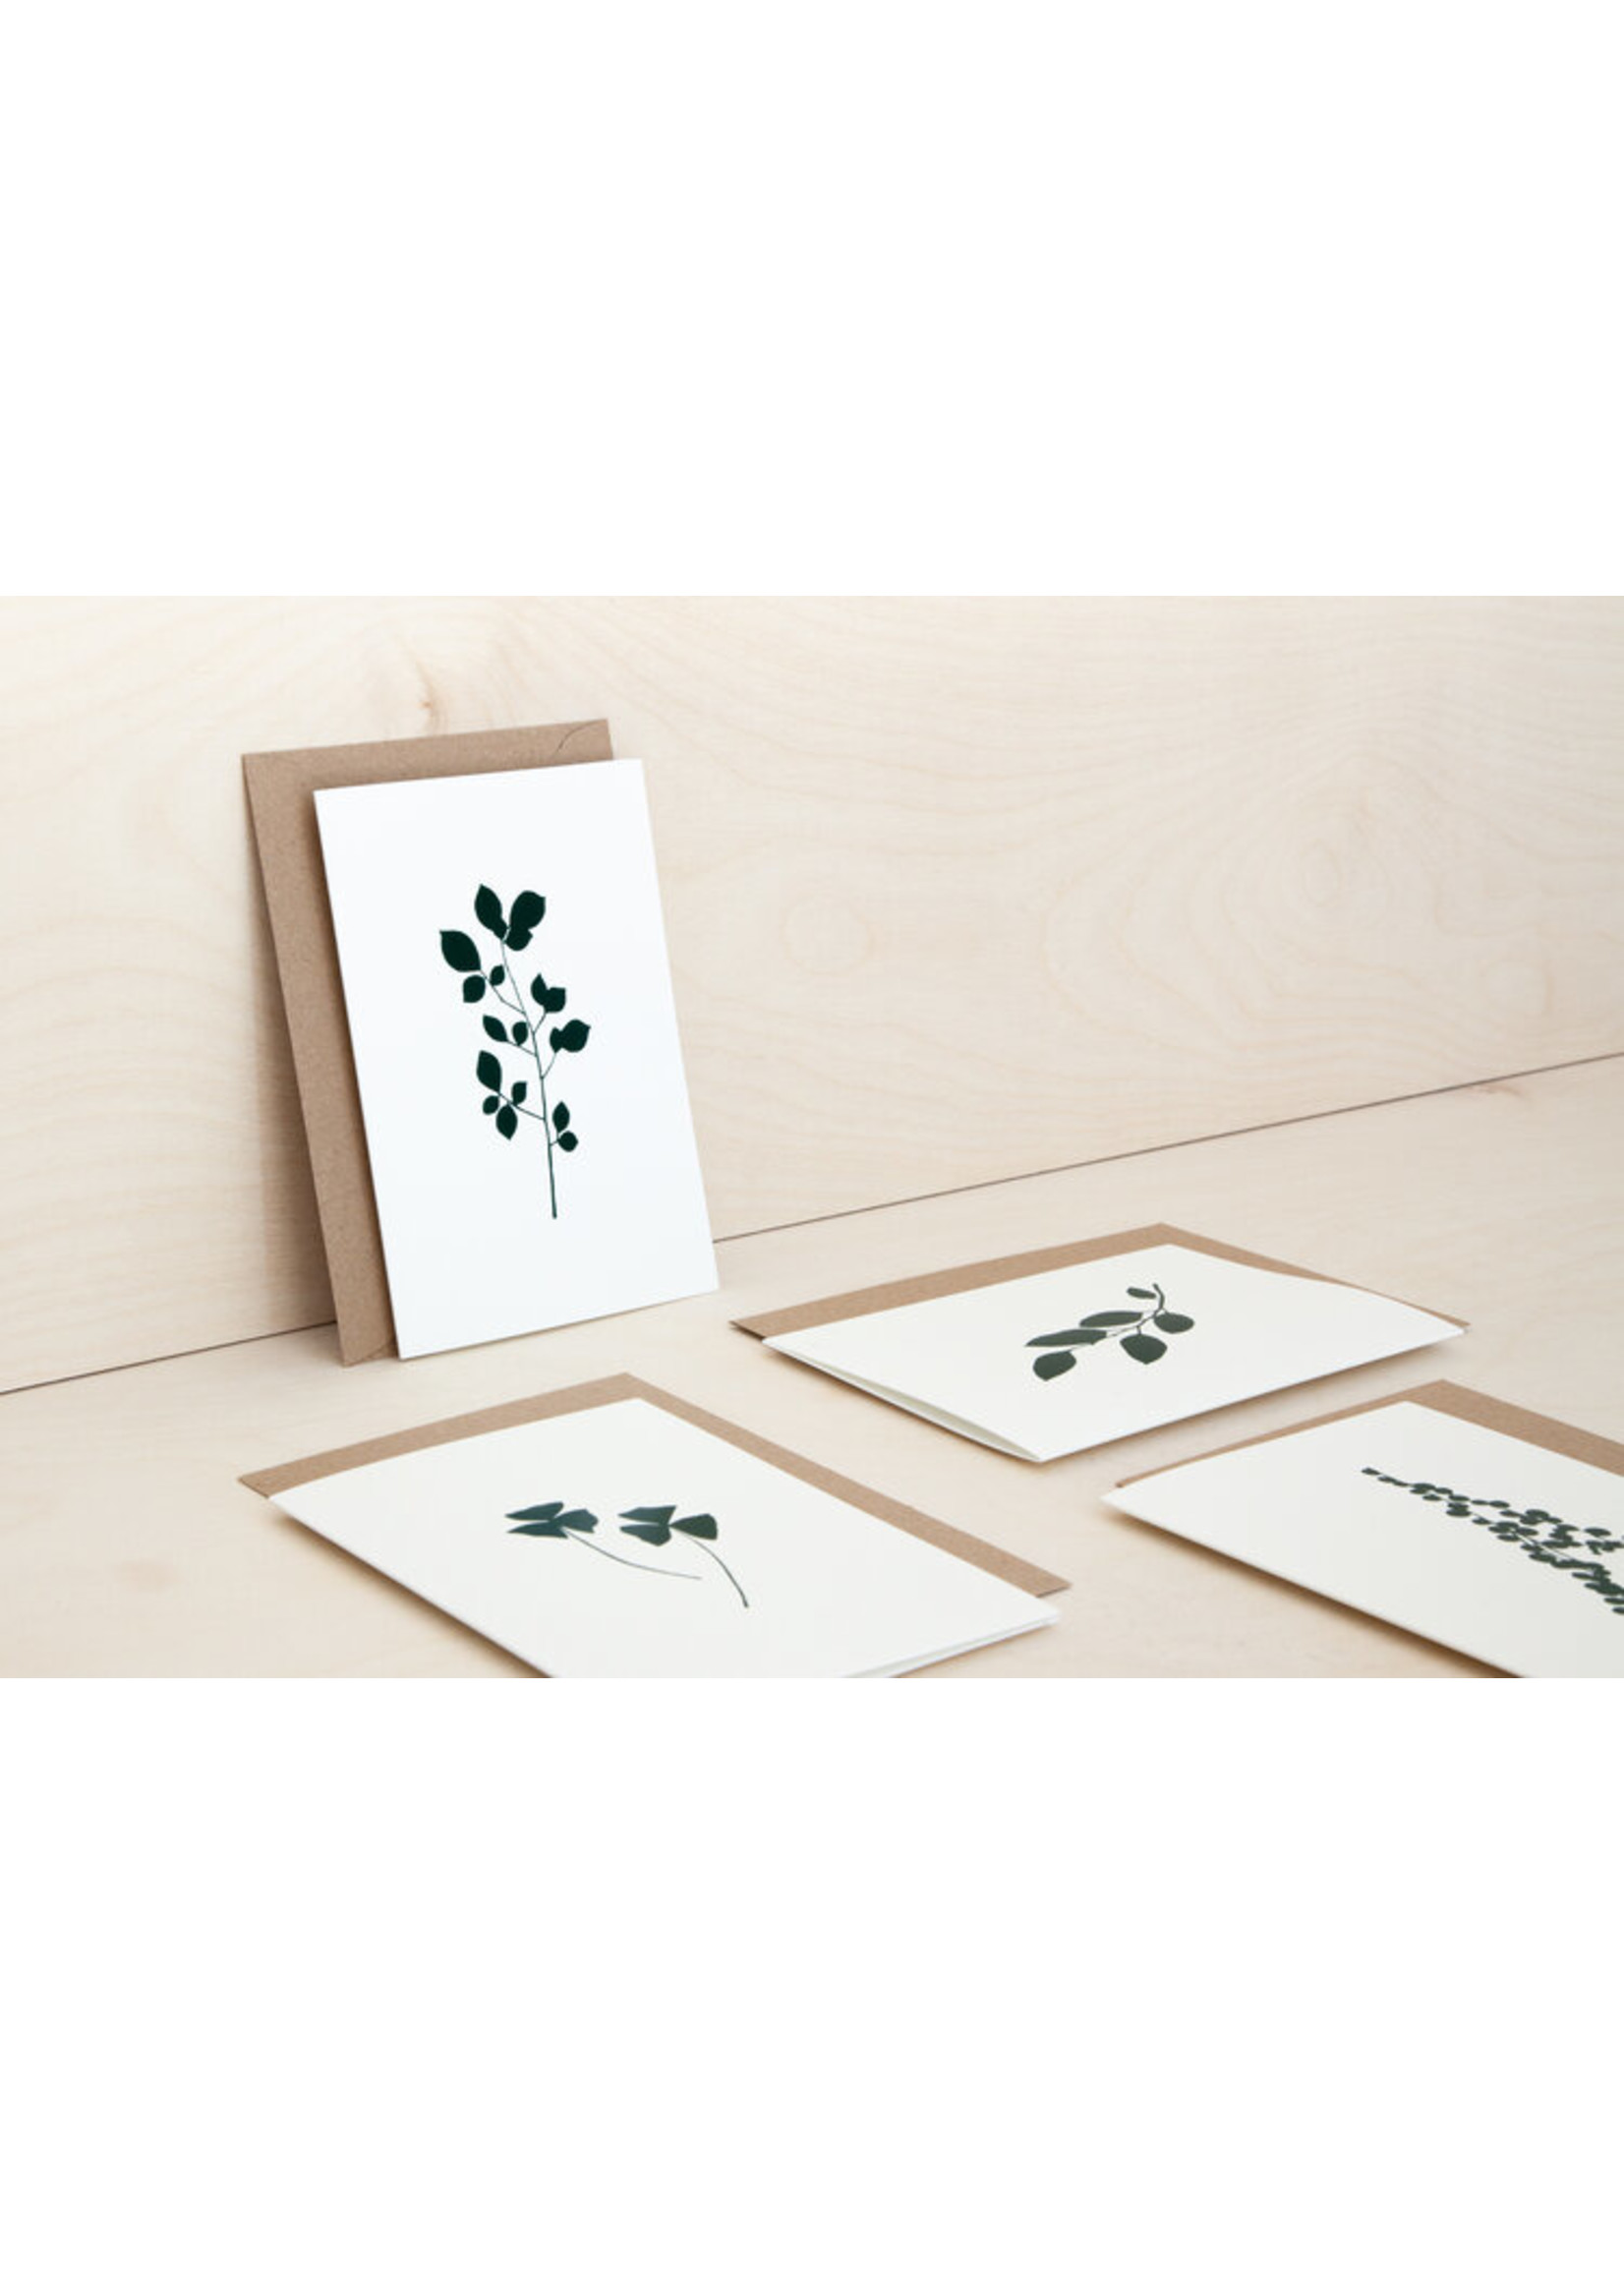 Ola Ola Foil Blocked Card Botanical Collection - Oxalis Print in Ivory/Green